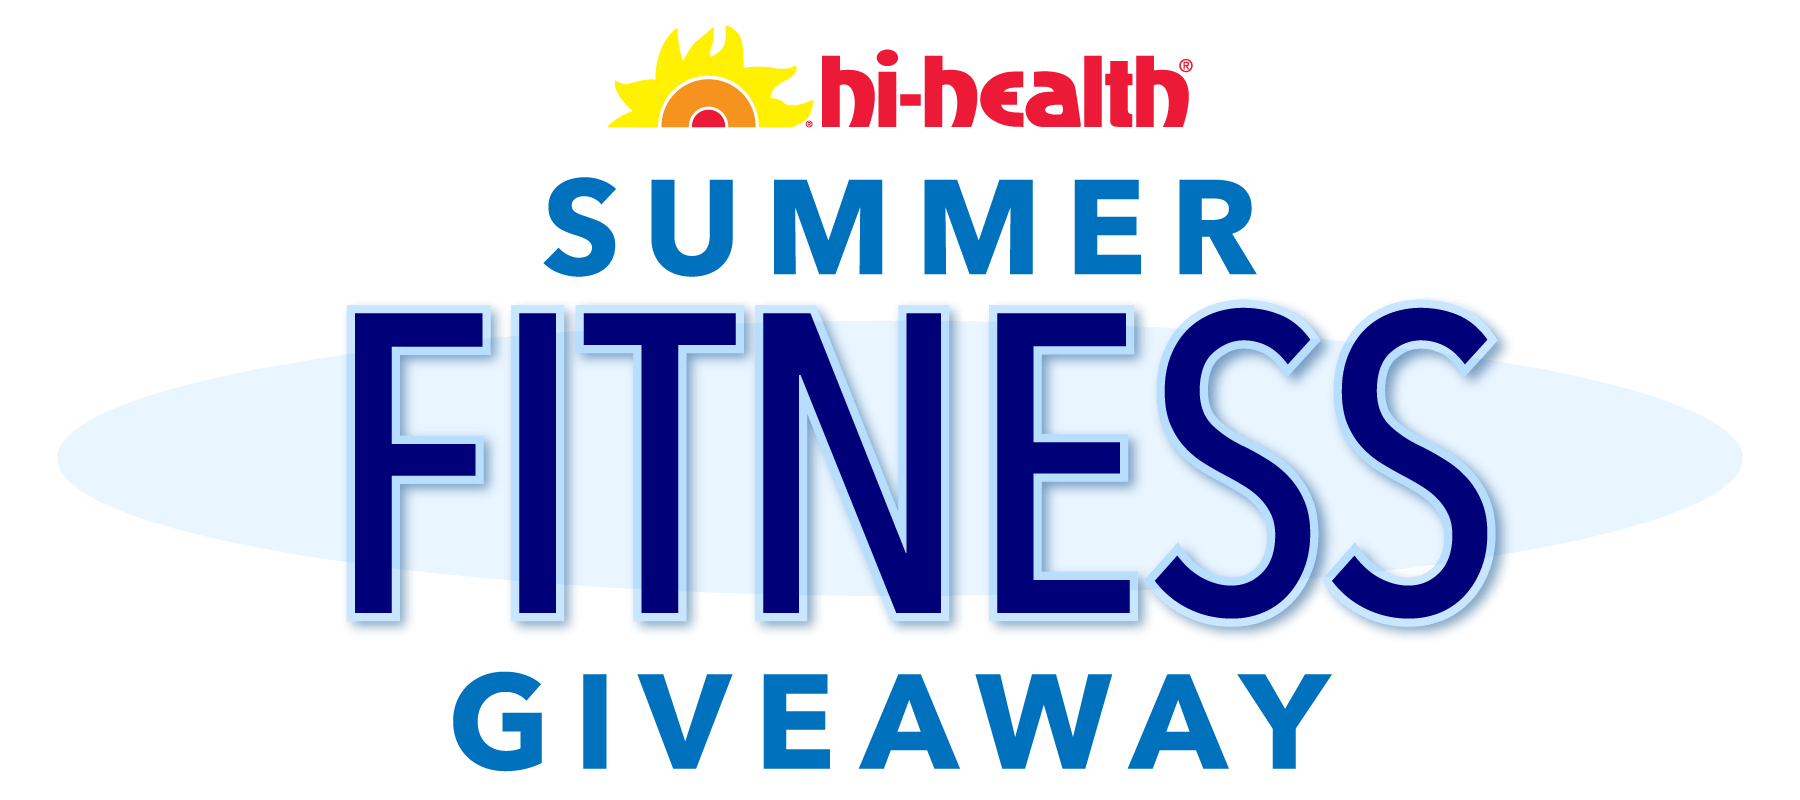 Hi-Health Summer Fitness Giveaway